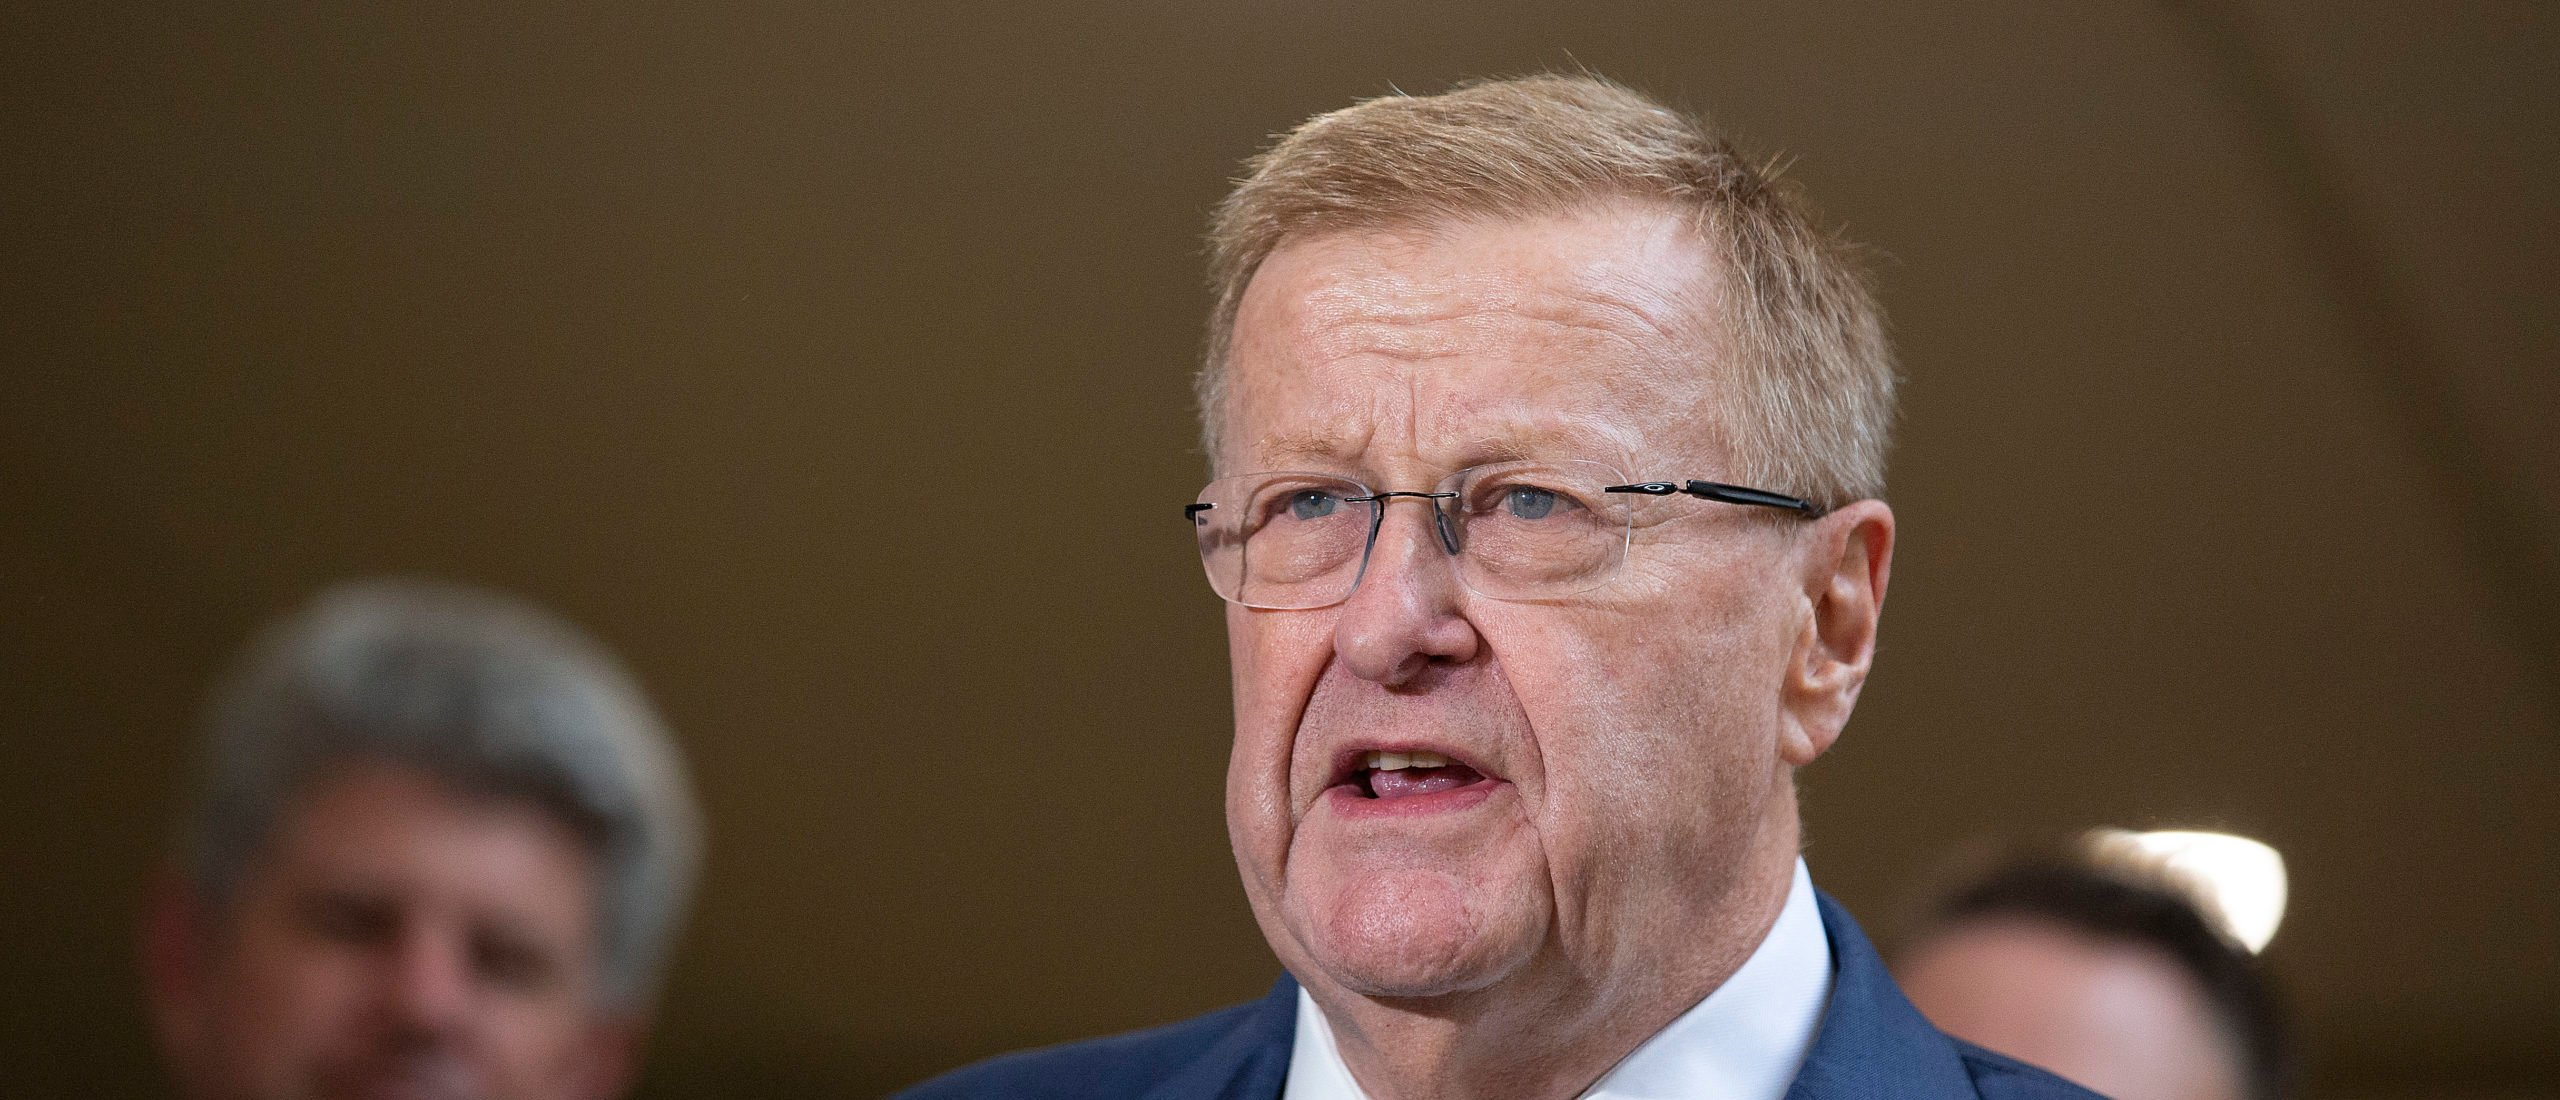 President of the Australian Olympic Committee John Coates speaks to the media during a press conference after the IOC announced targeted dialogue ahead of the 2032 Brisbane Olympic Games bid, at Queensland Parliament House on February 25, 2021 in Brisbane, Australia. (Photo by Jono Searle/Getty Images)